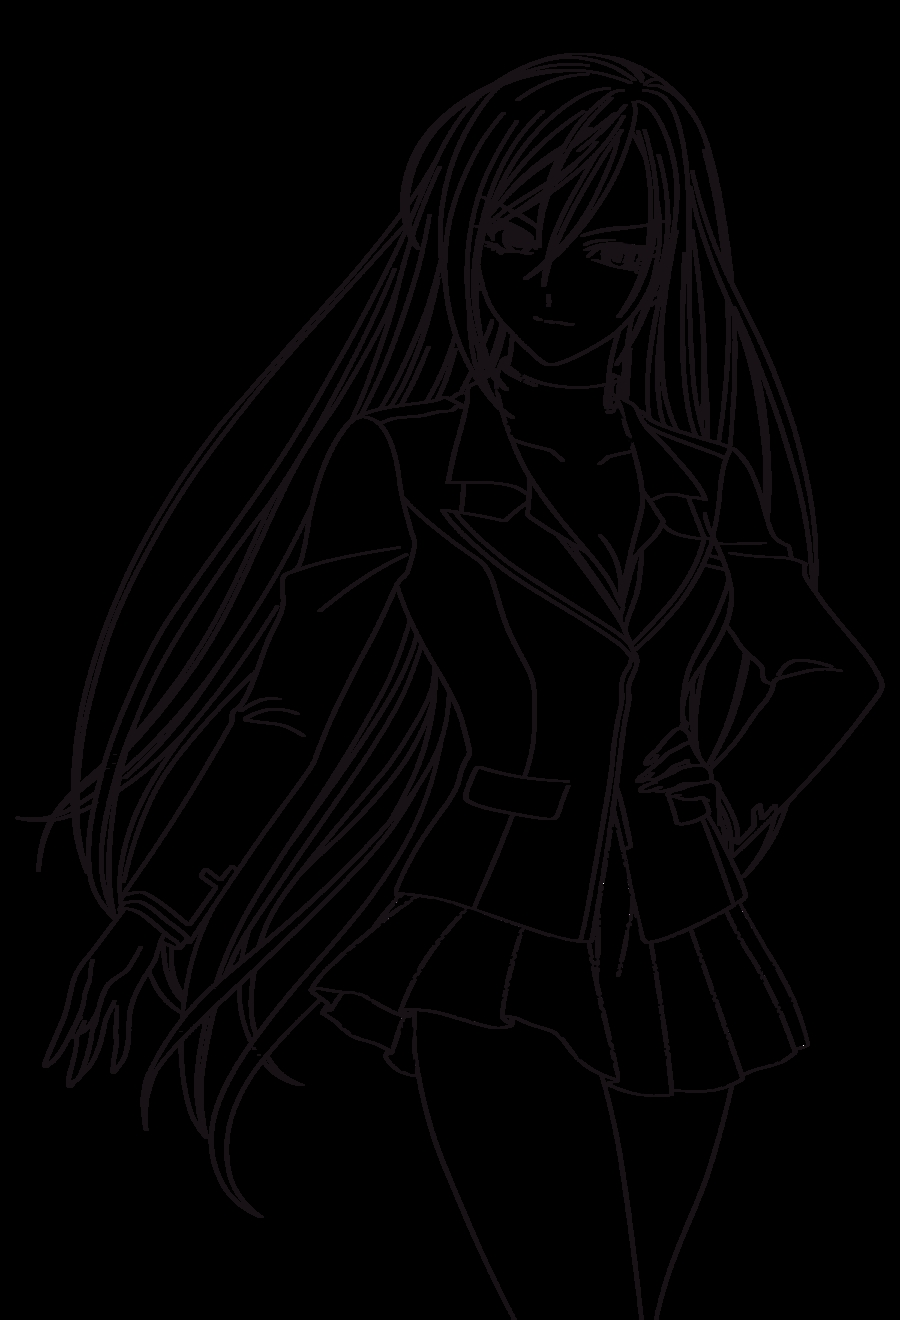 rosary coloring page - Rosario Vampire 1 Lineart